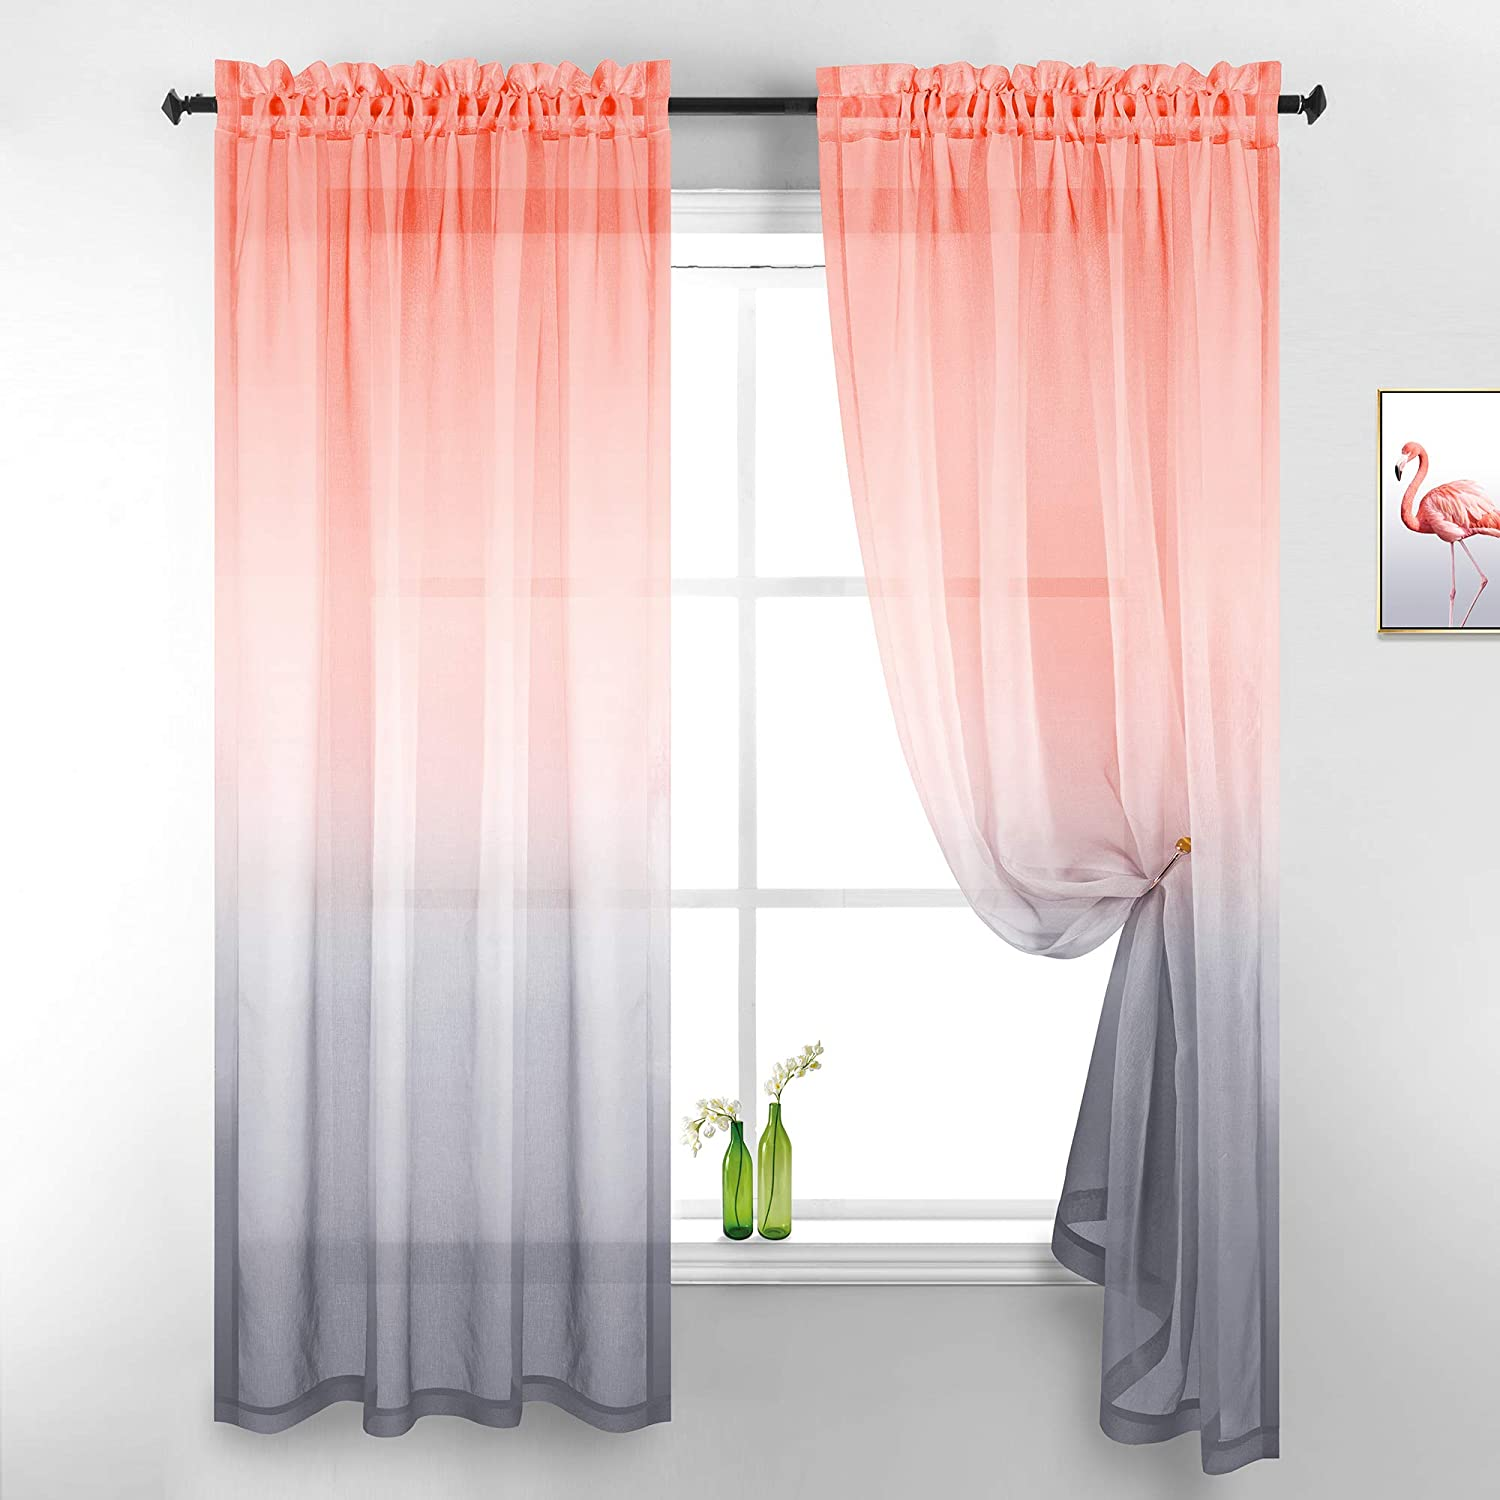 Gray and Coral Curtains 84 Inches Long for Living Room Set of 2 Panels Rod Pocket Window Semi Voile Drapes Ombre Sheer Curtains for Bedroom Girls Room Decor 52x84 Inch Length Salmon and Grey